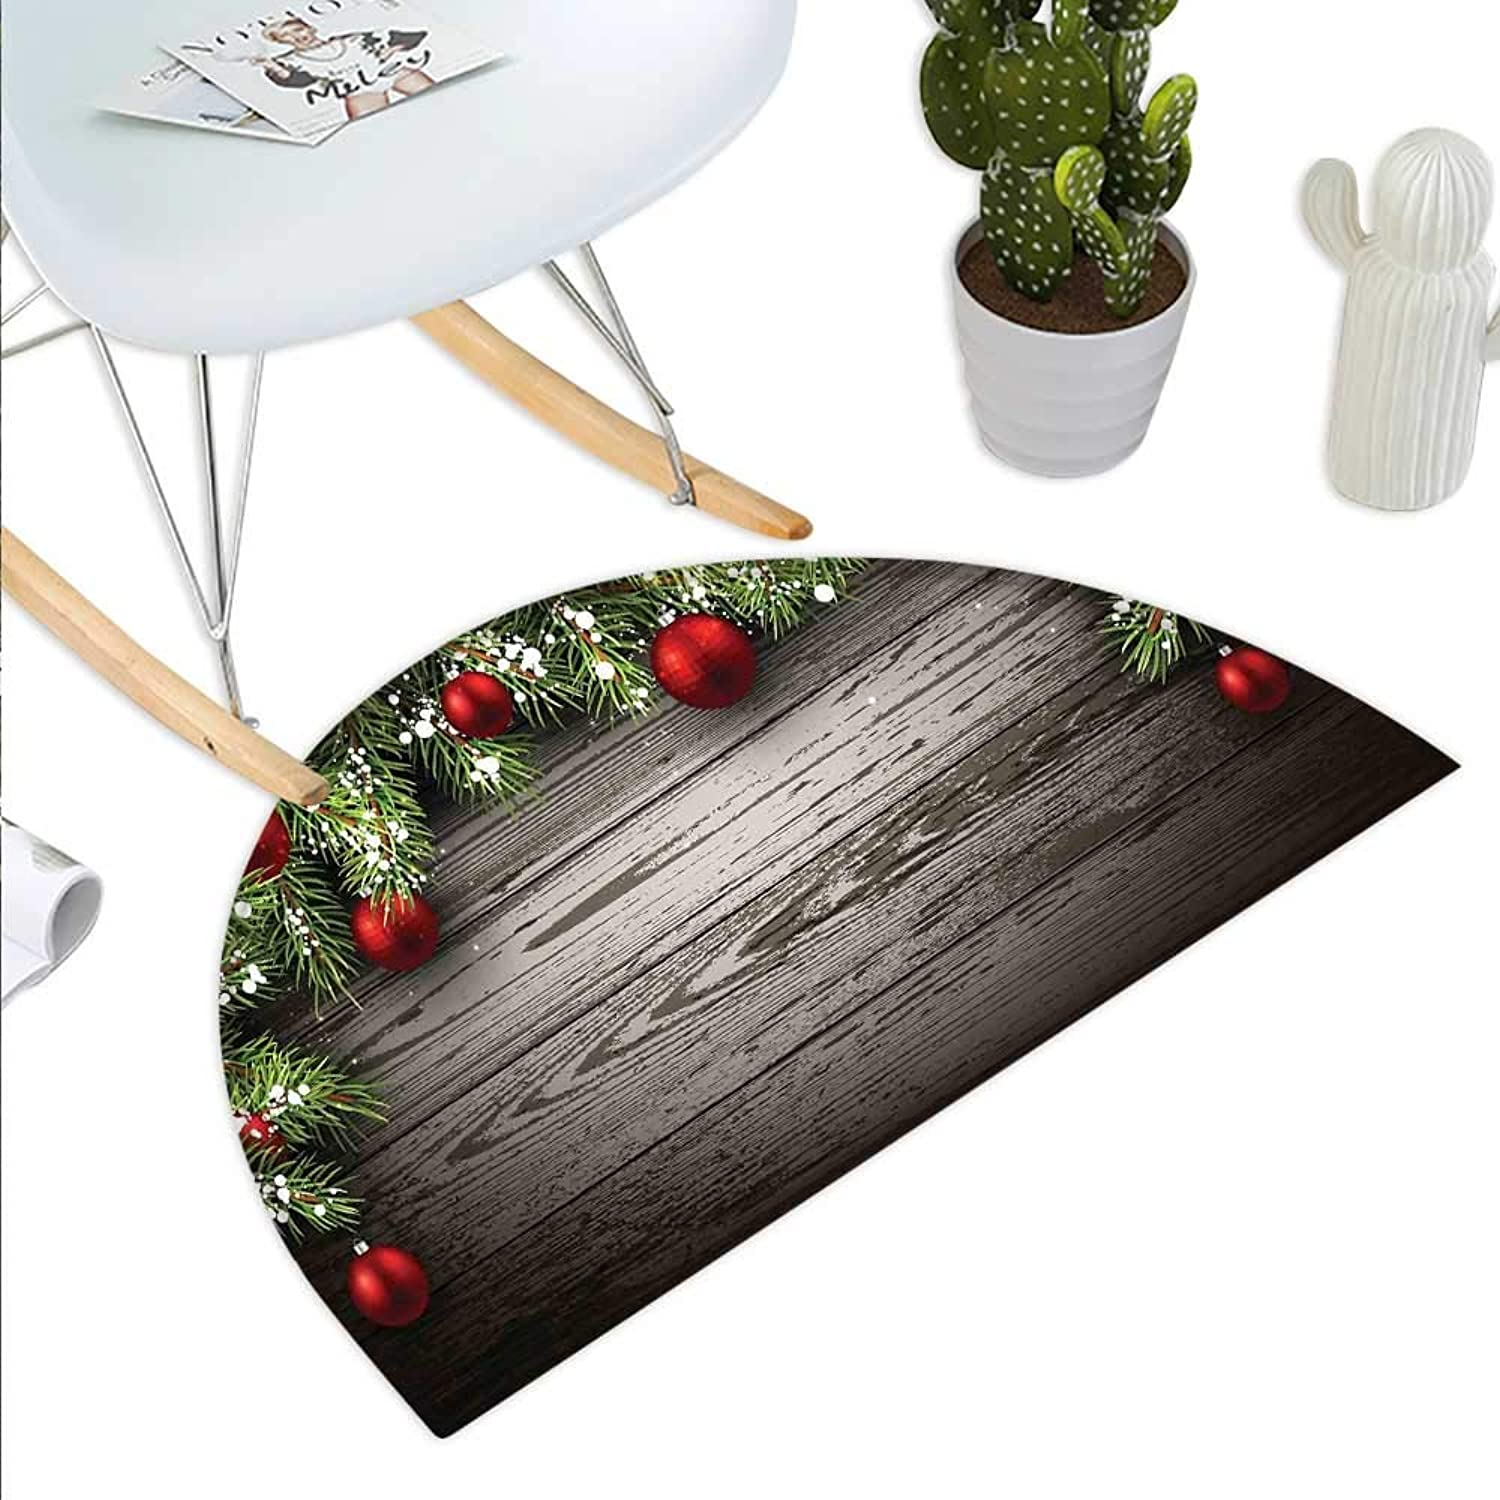 Christmas Semicircle Doormat Ornaments Nostalgic Historical Celebration and Reunion Religious Themed Print Halfmoon doormats H 35.4  xD 53.1  Red Brown